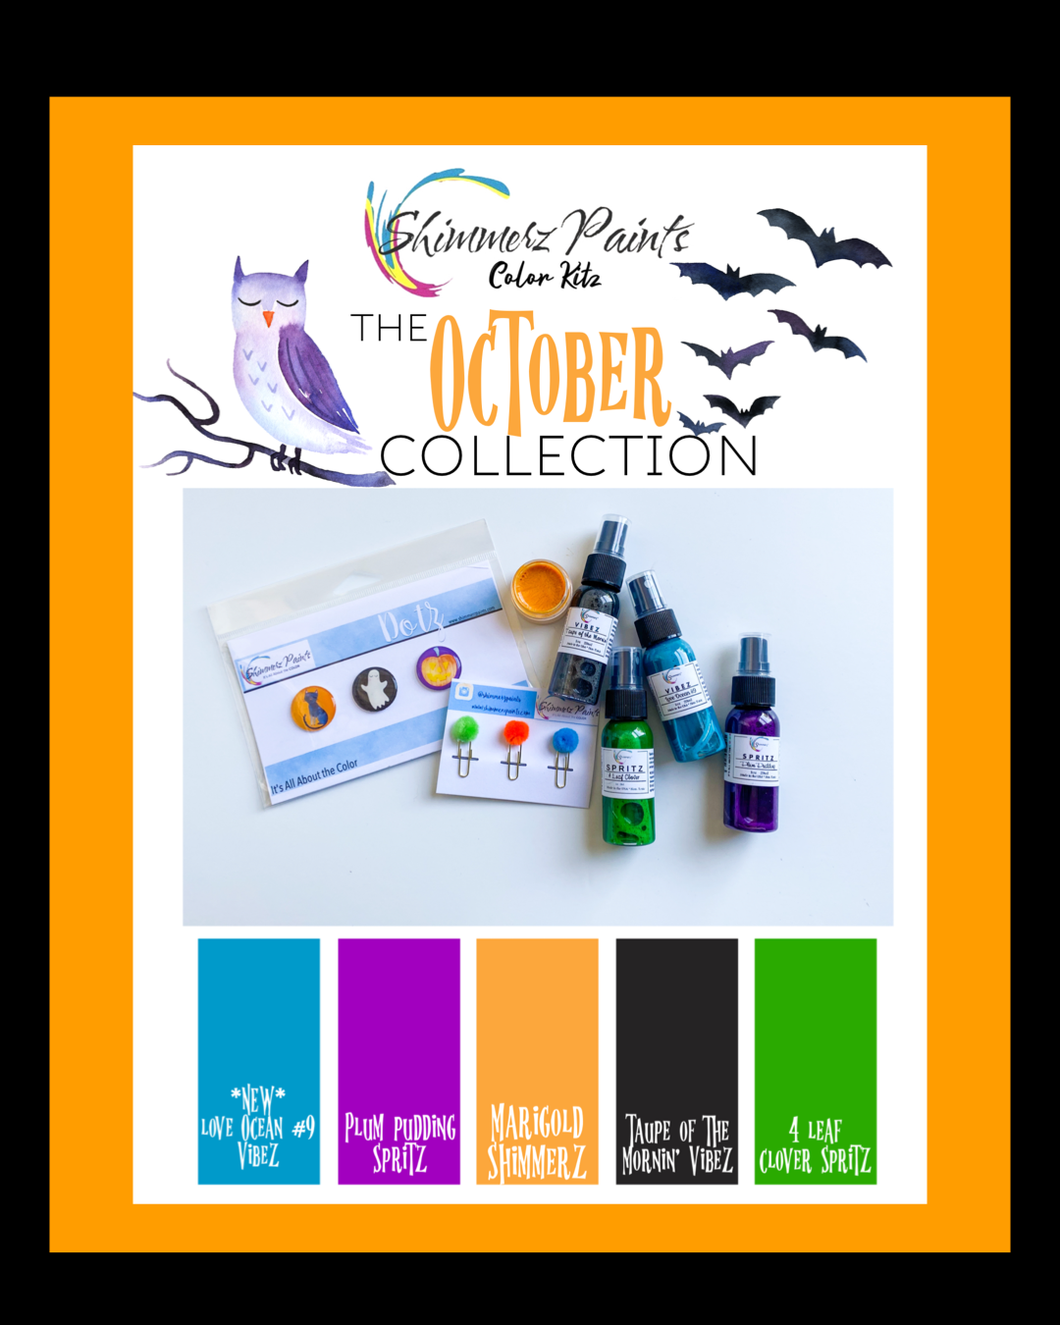 Color Kitz - The October Collection